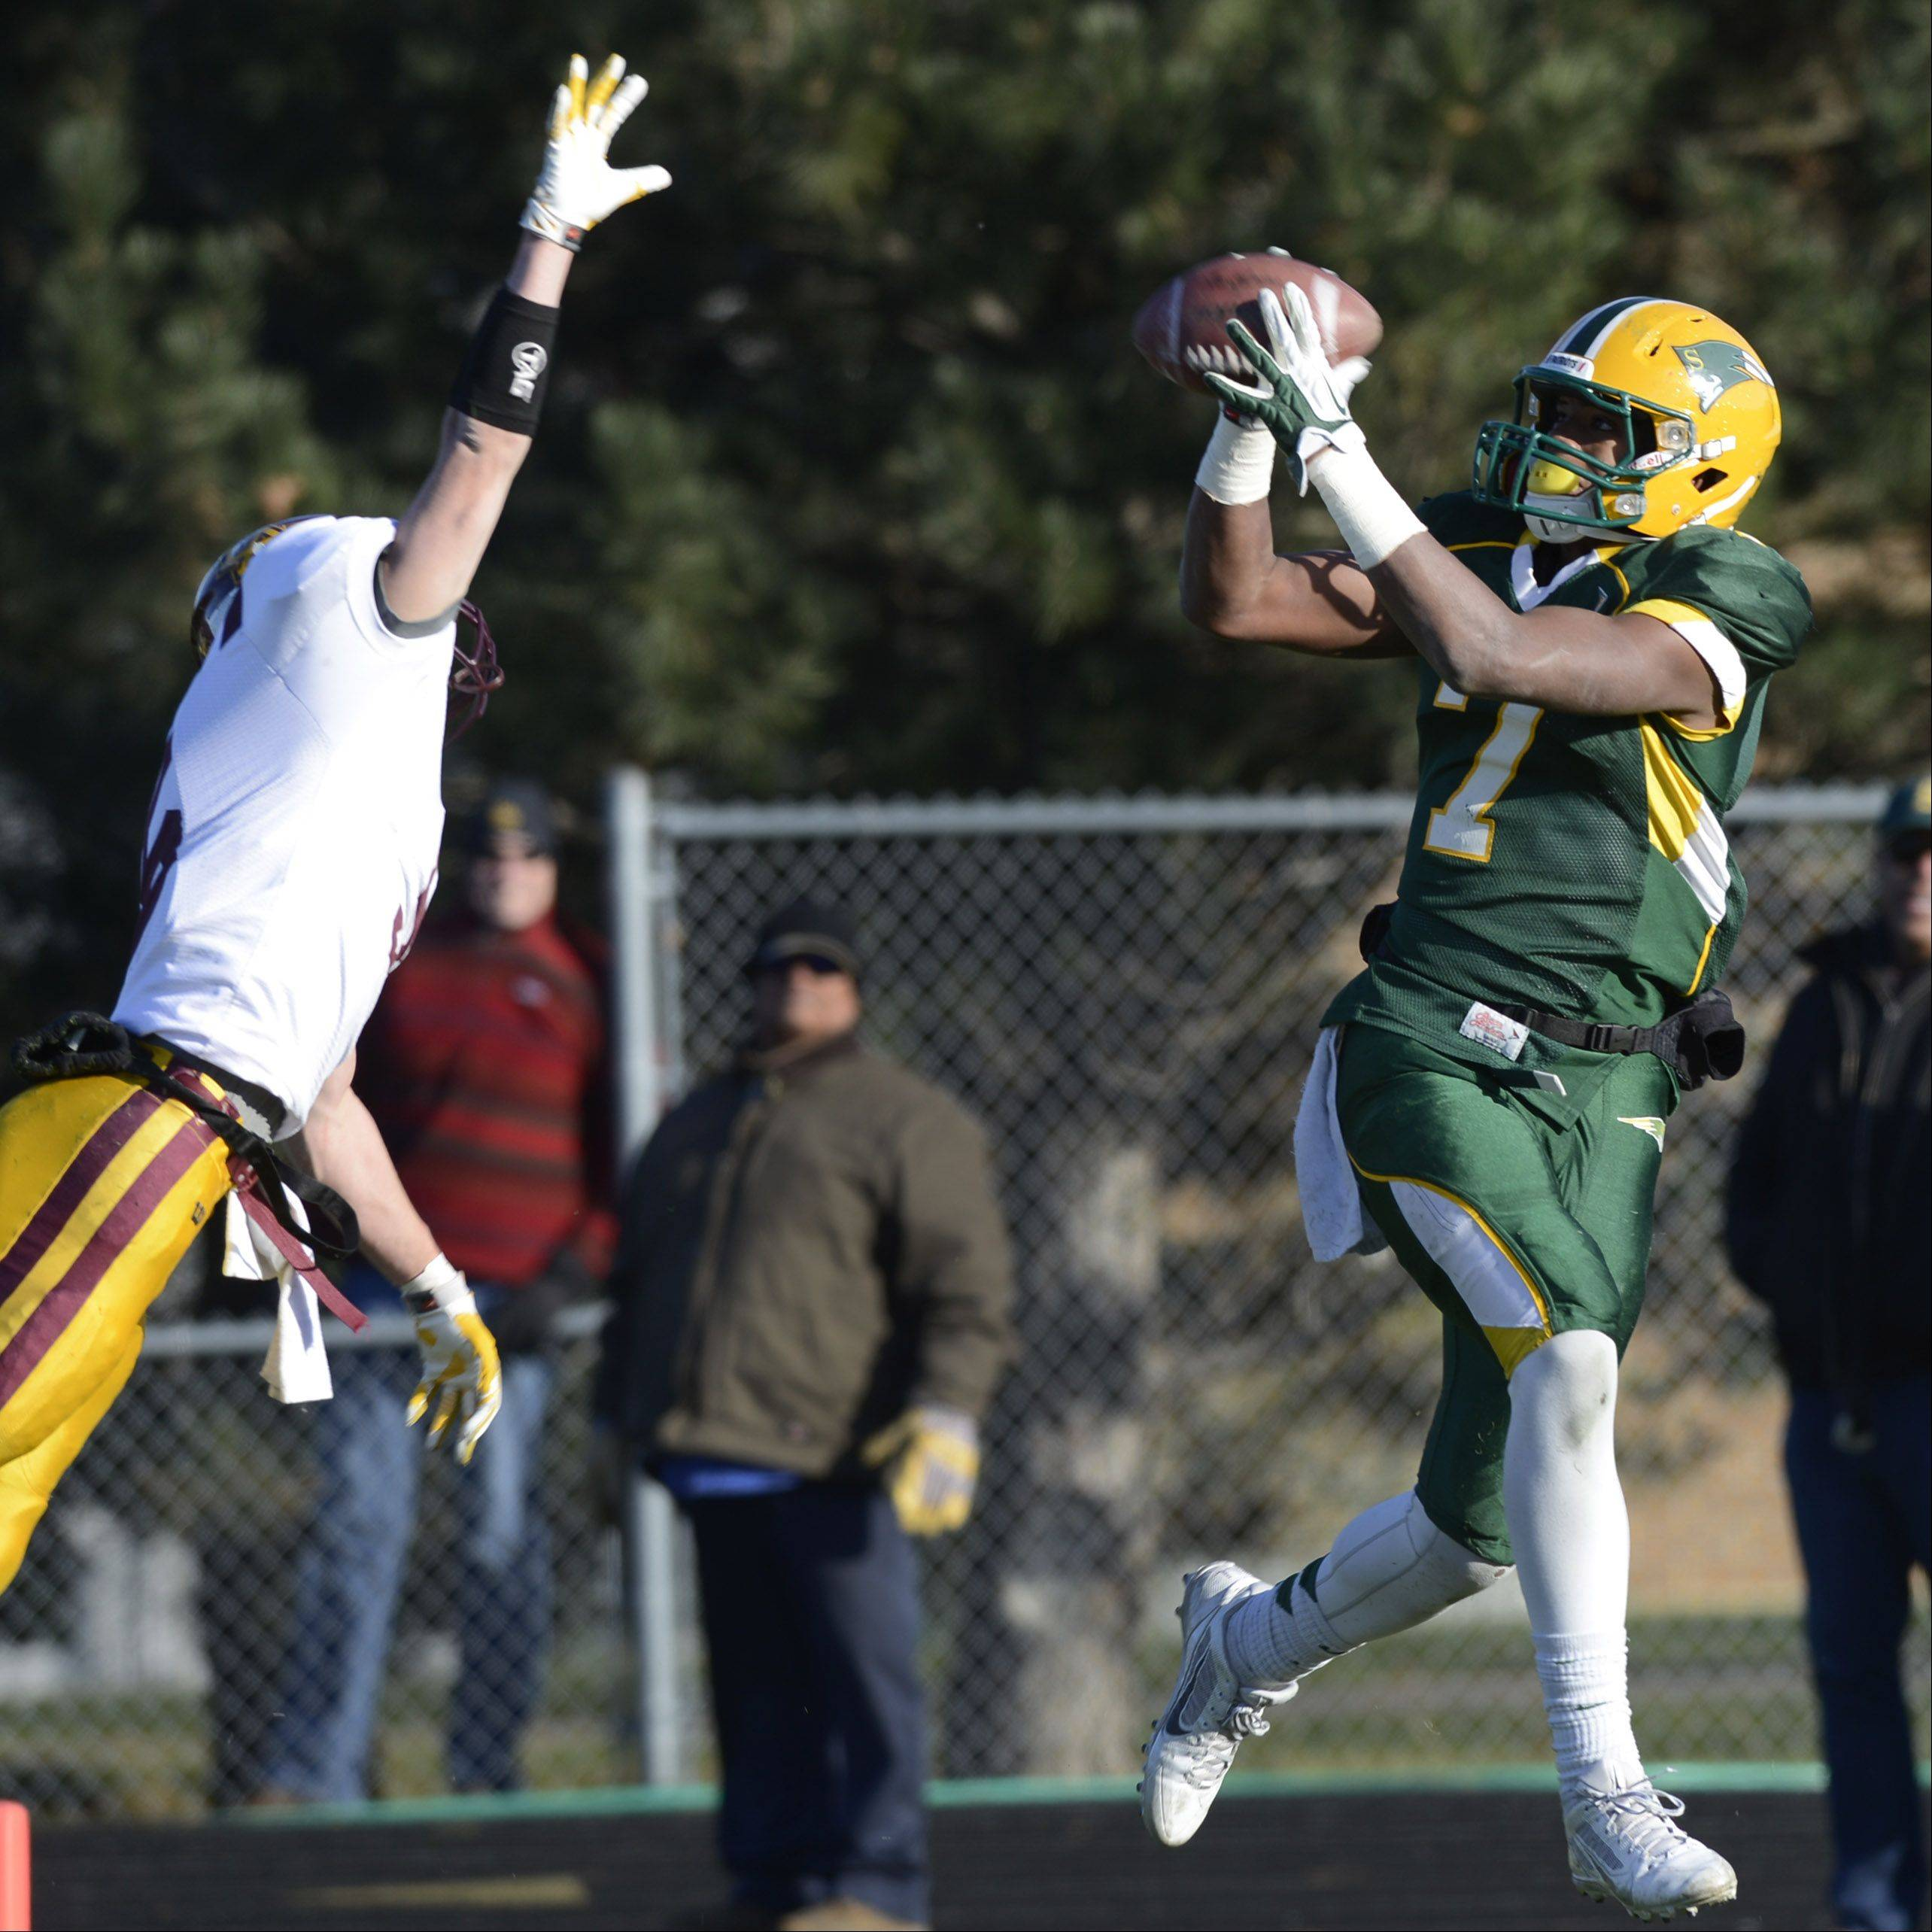 Stevenson's Cameron Green makes a touchdown catch in front of Loyola's Jack Gleason during Saturday's class 8A semifinal in Lincolnshire.